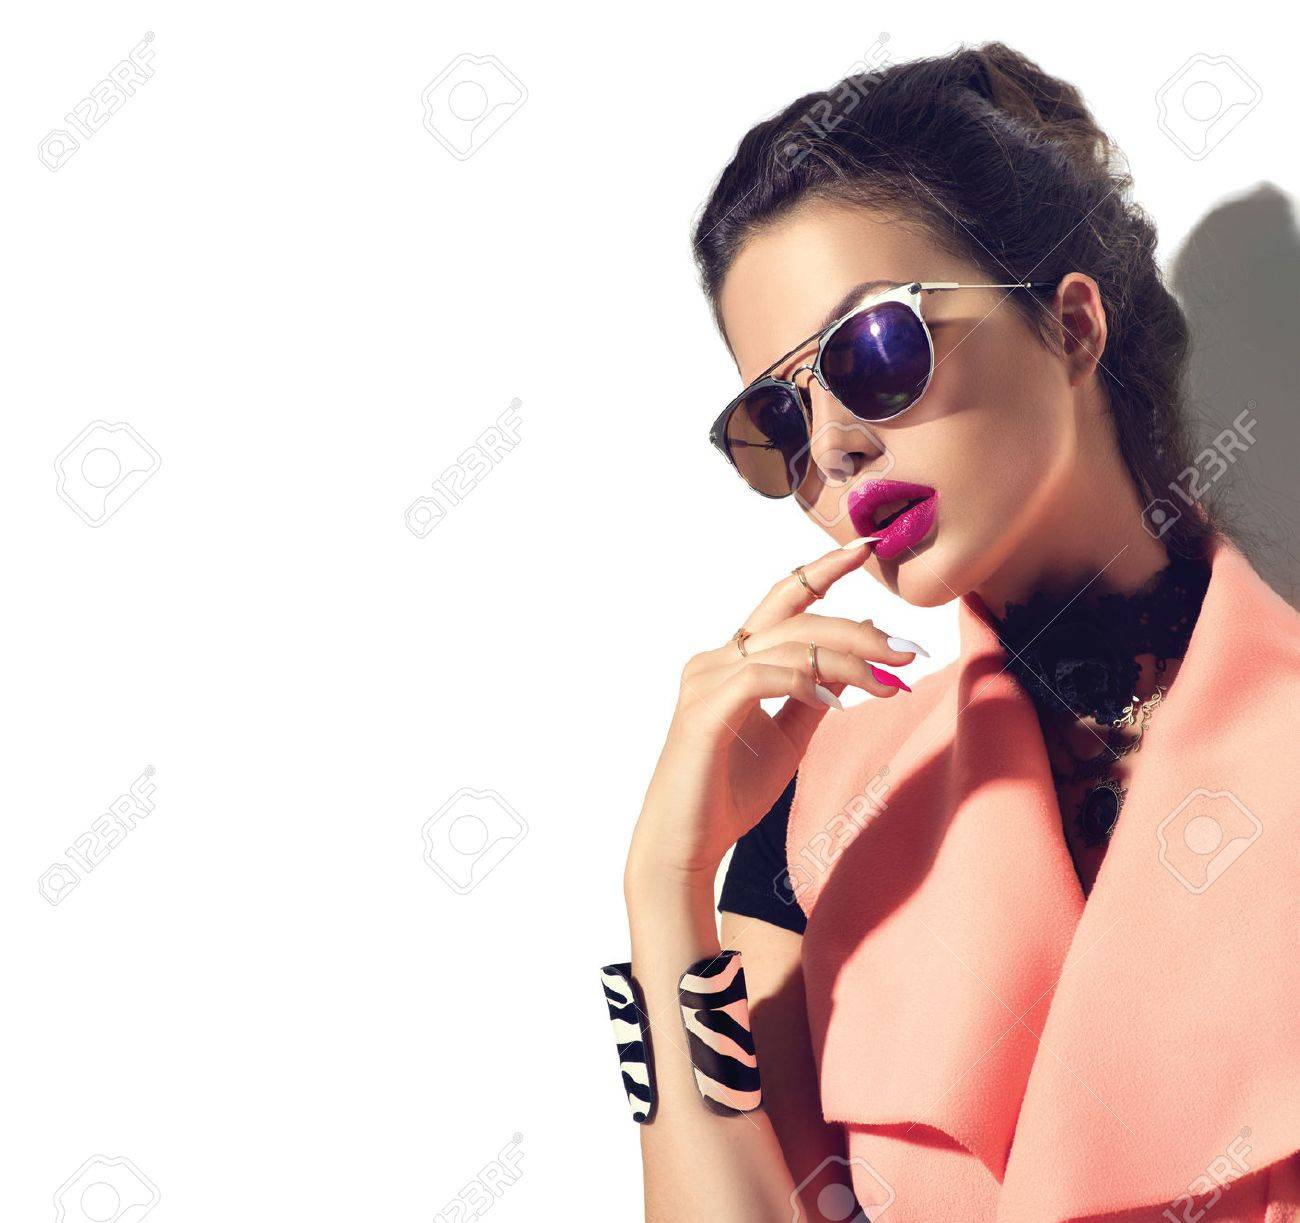 Beauty fashion model girl with brown hair wearing stylish sunglasses Banque d'images - 61789364